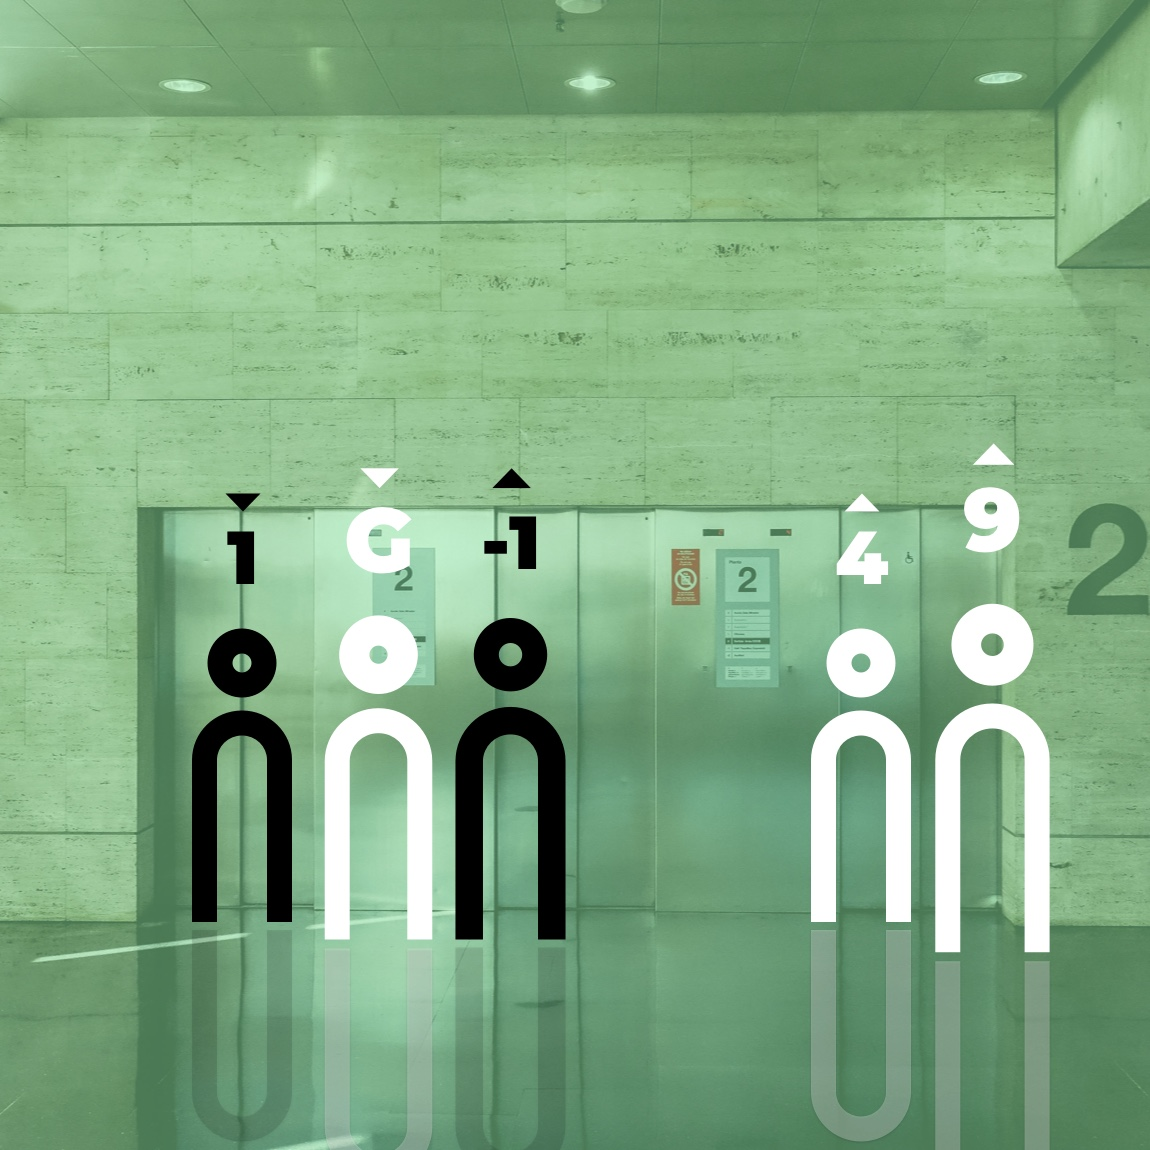 Image of two elevator and users